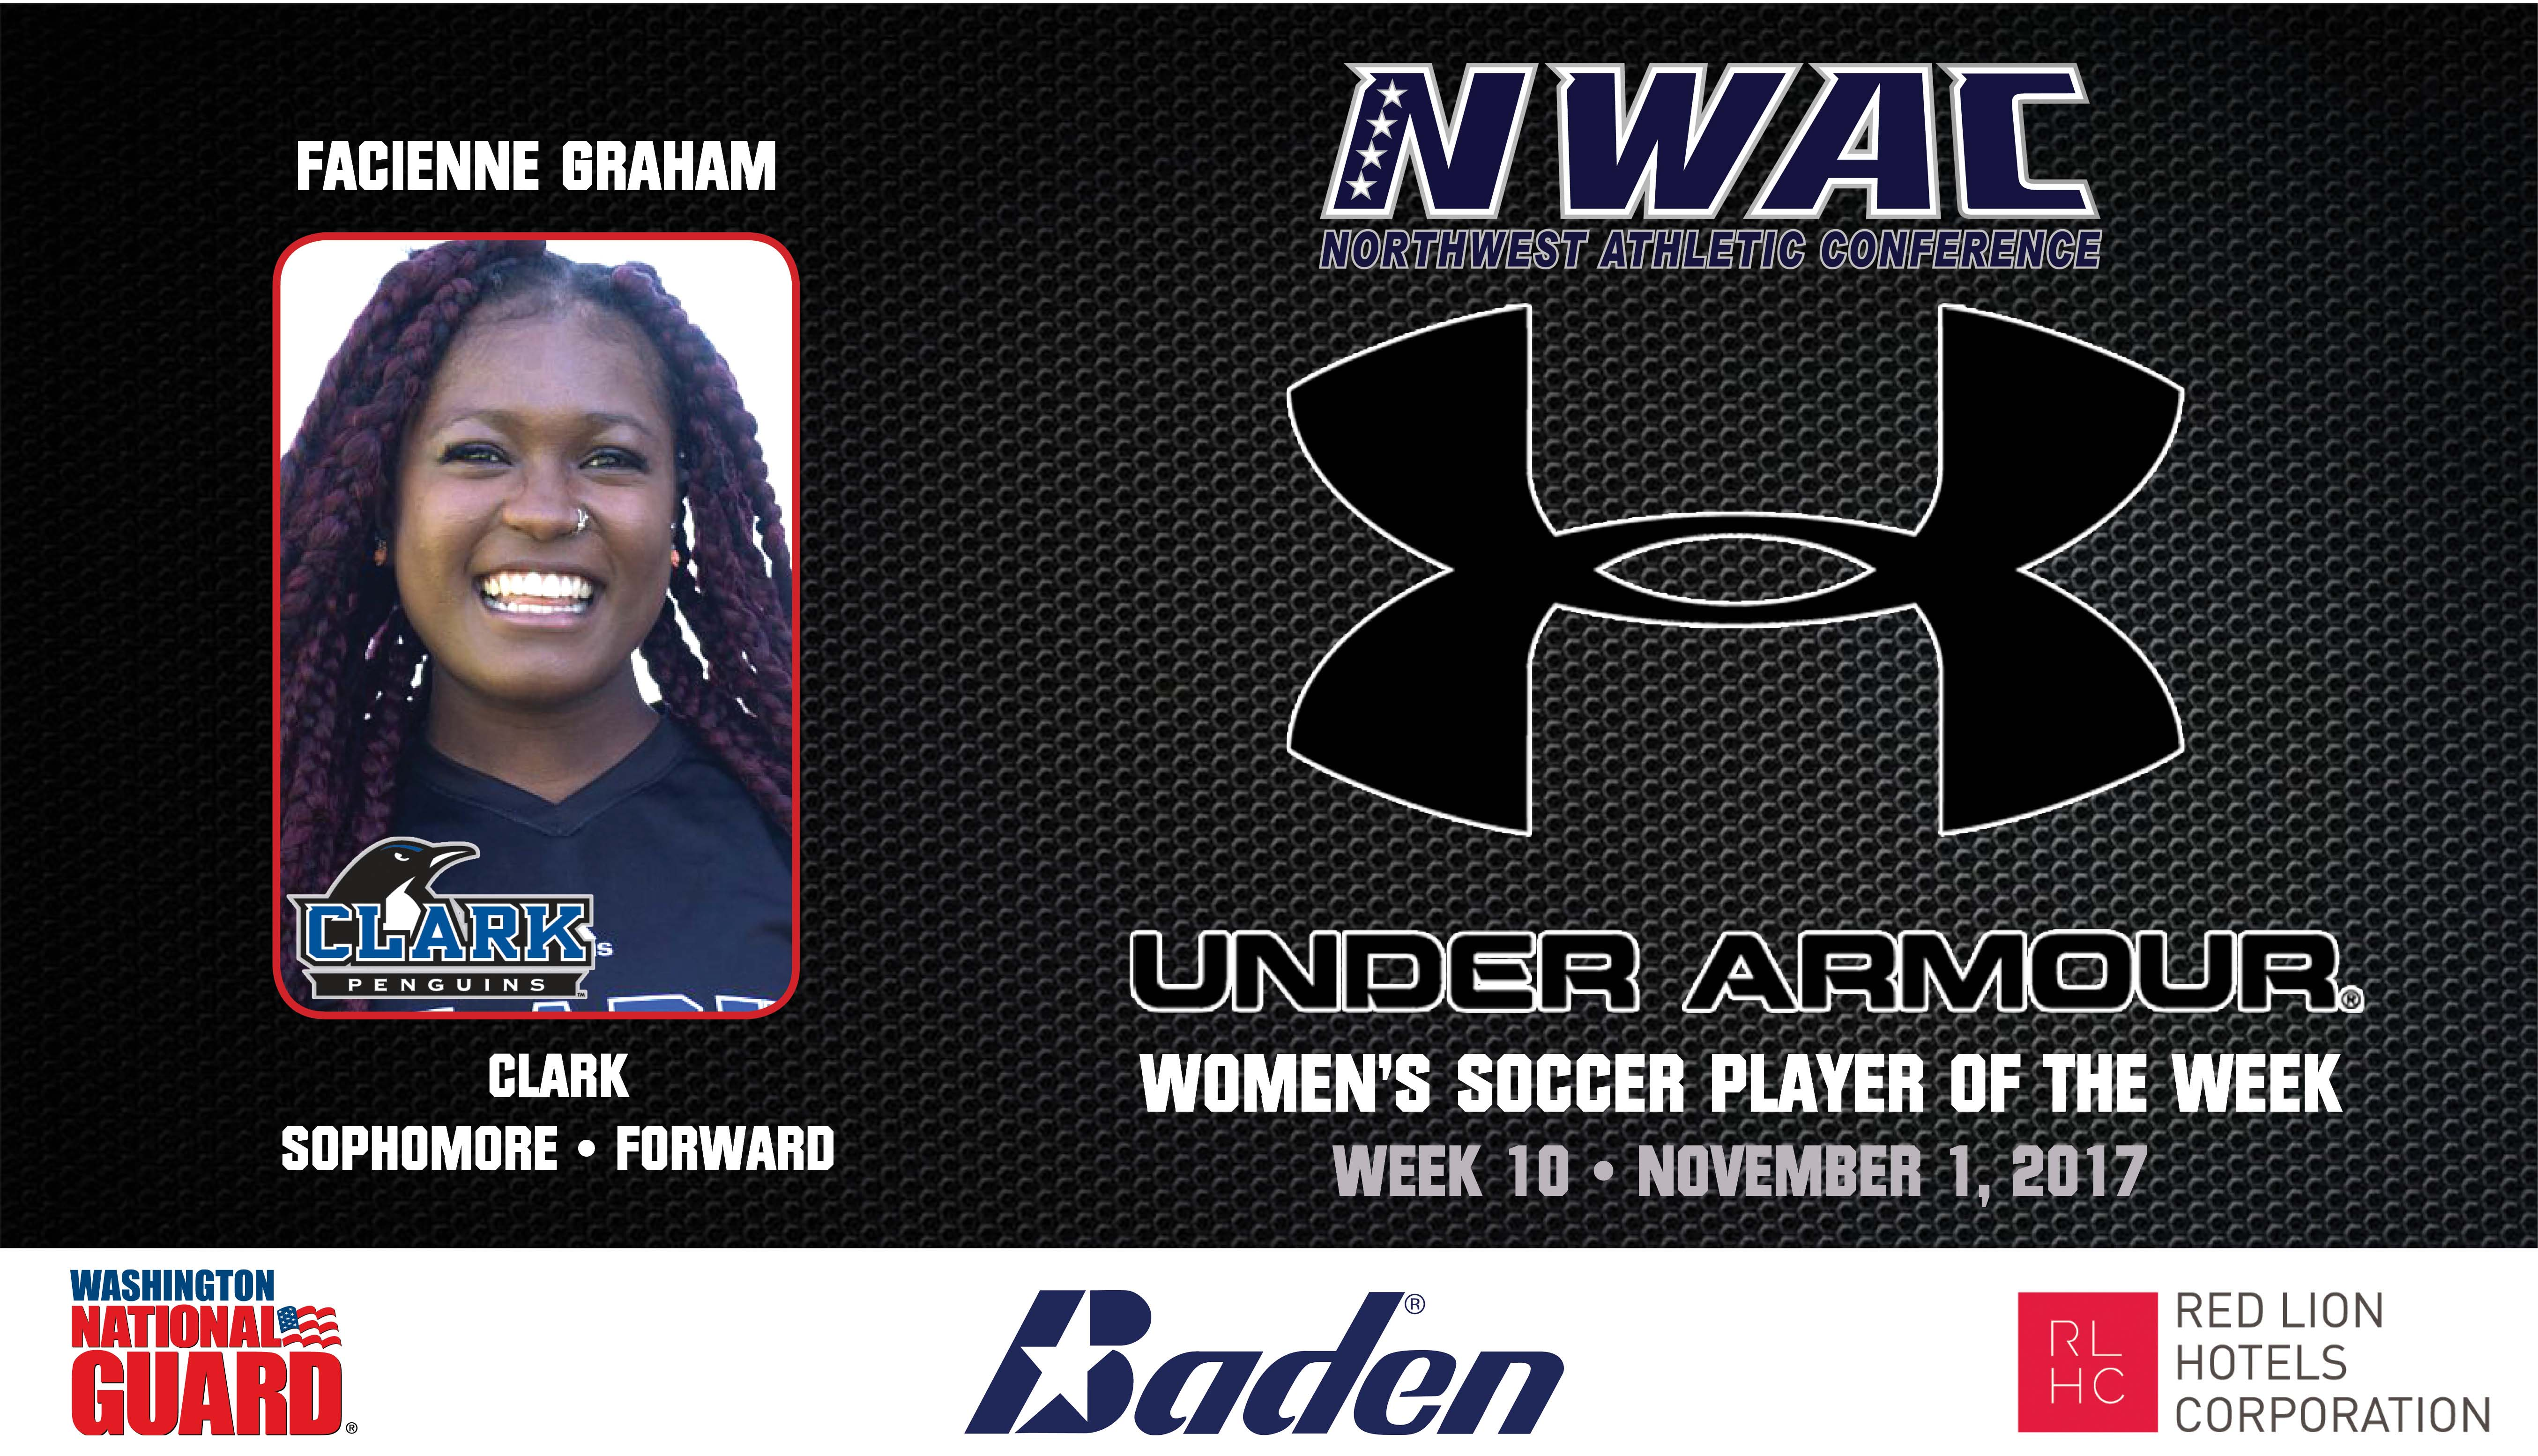 Facienne Graham Armour Player of the Week graphic